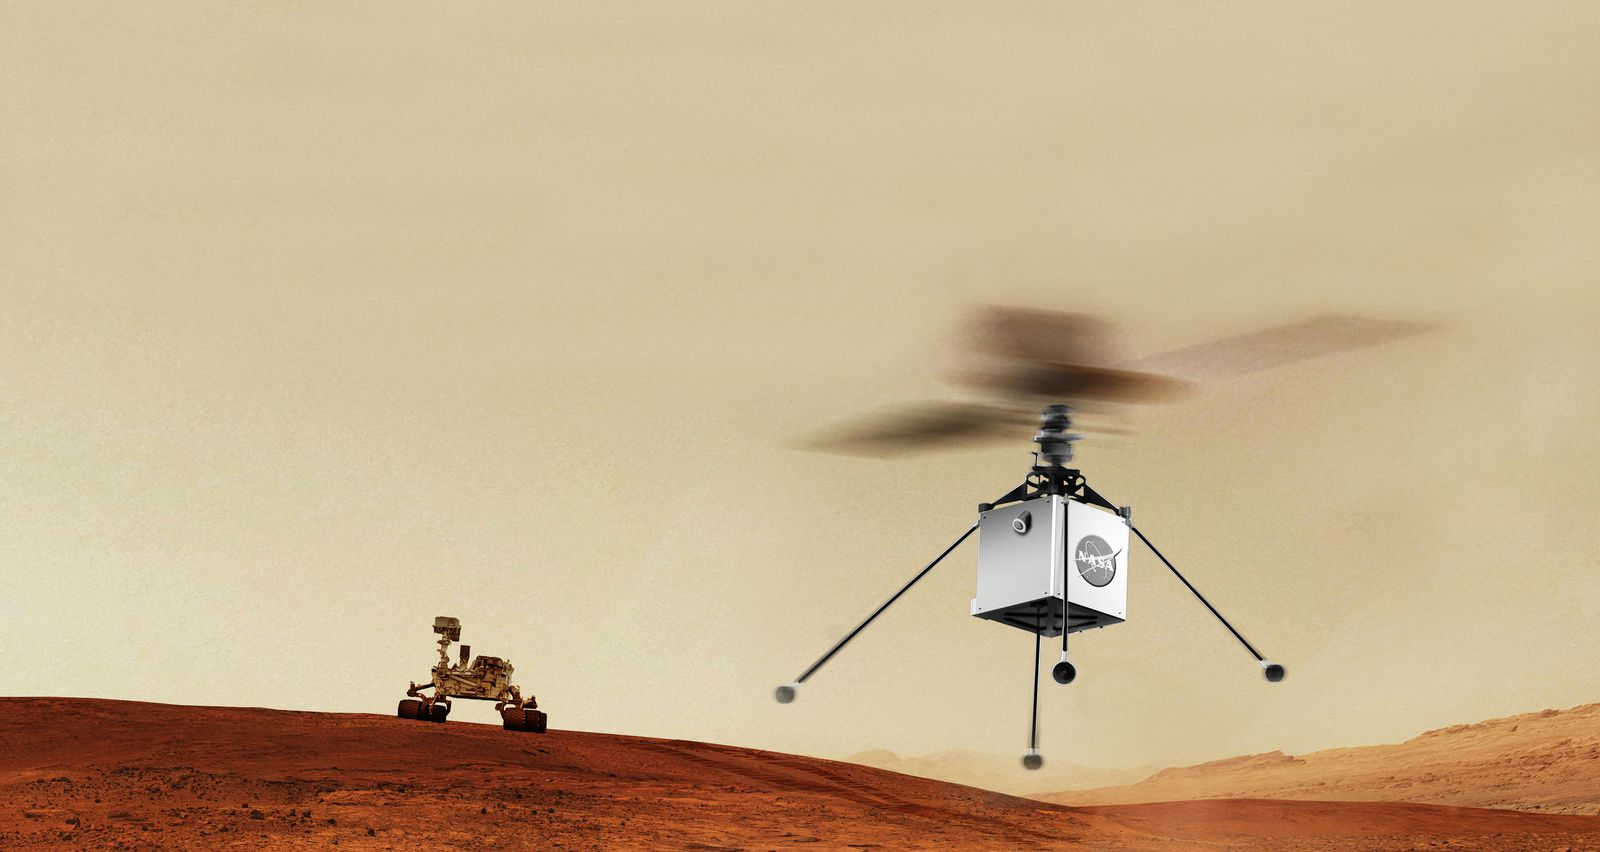 The first plane to fly in another world will do so on Mars.